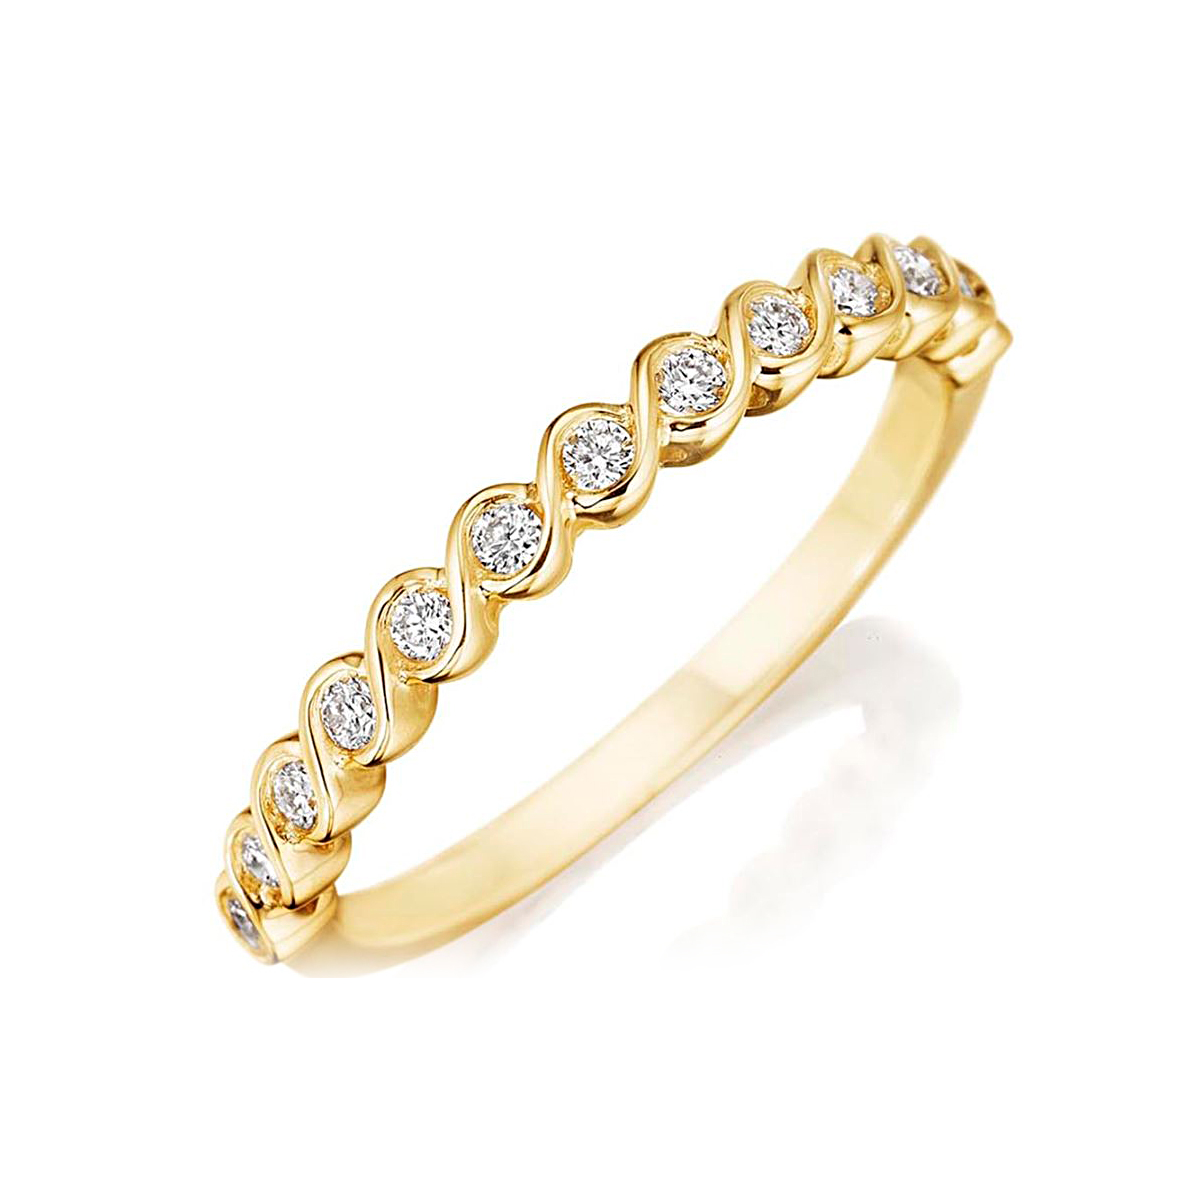 Henri Daussi 14 Karat Yellow Gold Diamond Wedding Band